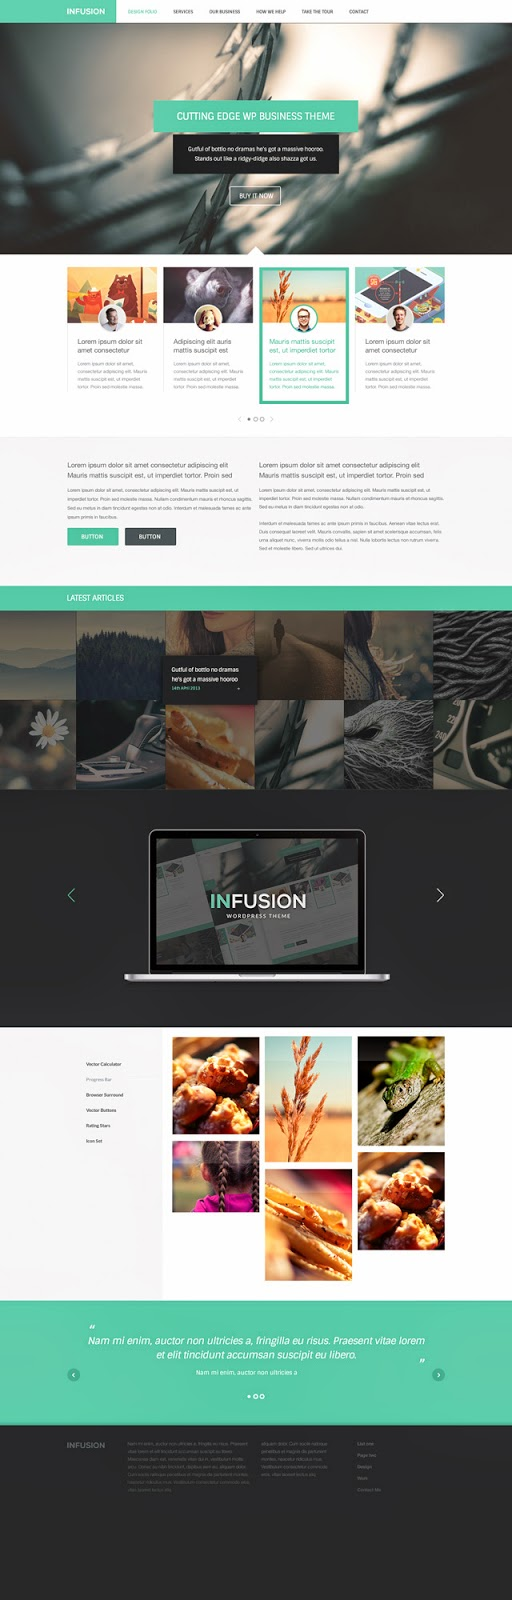 Free PSD Website Template